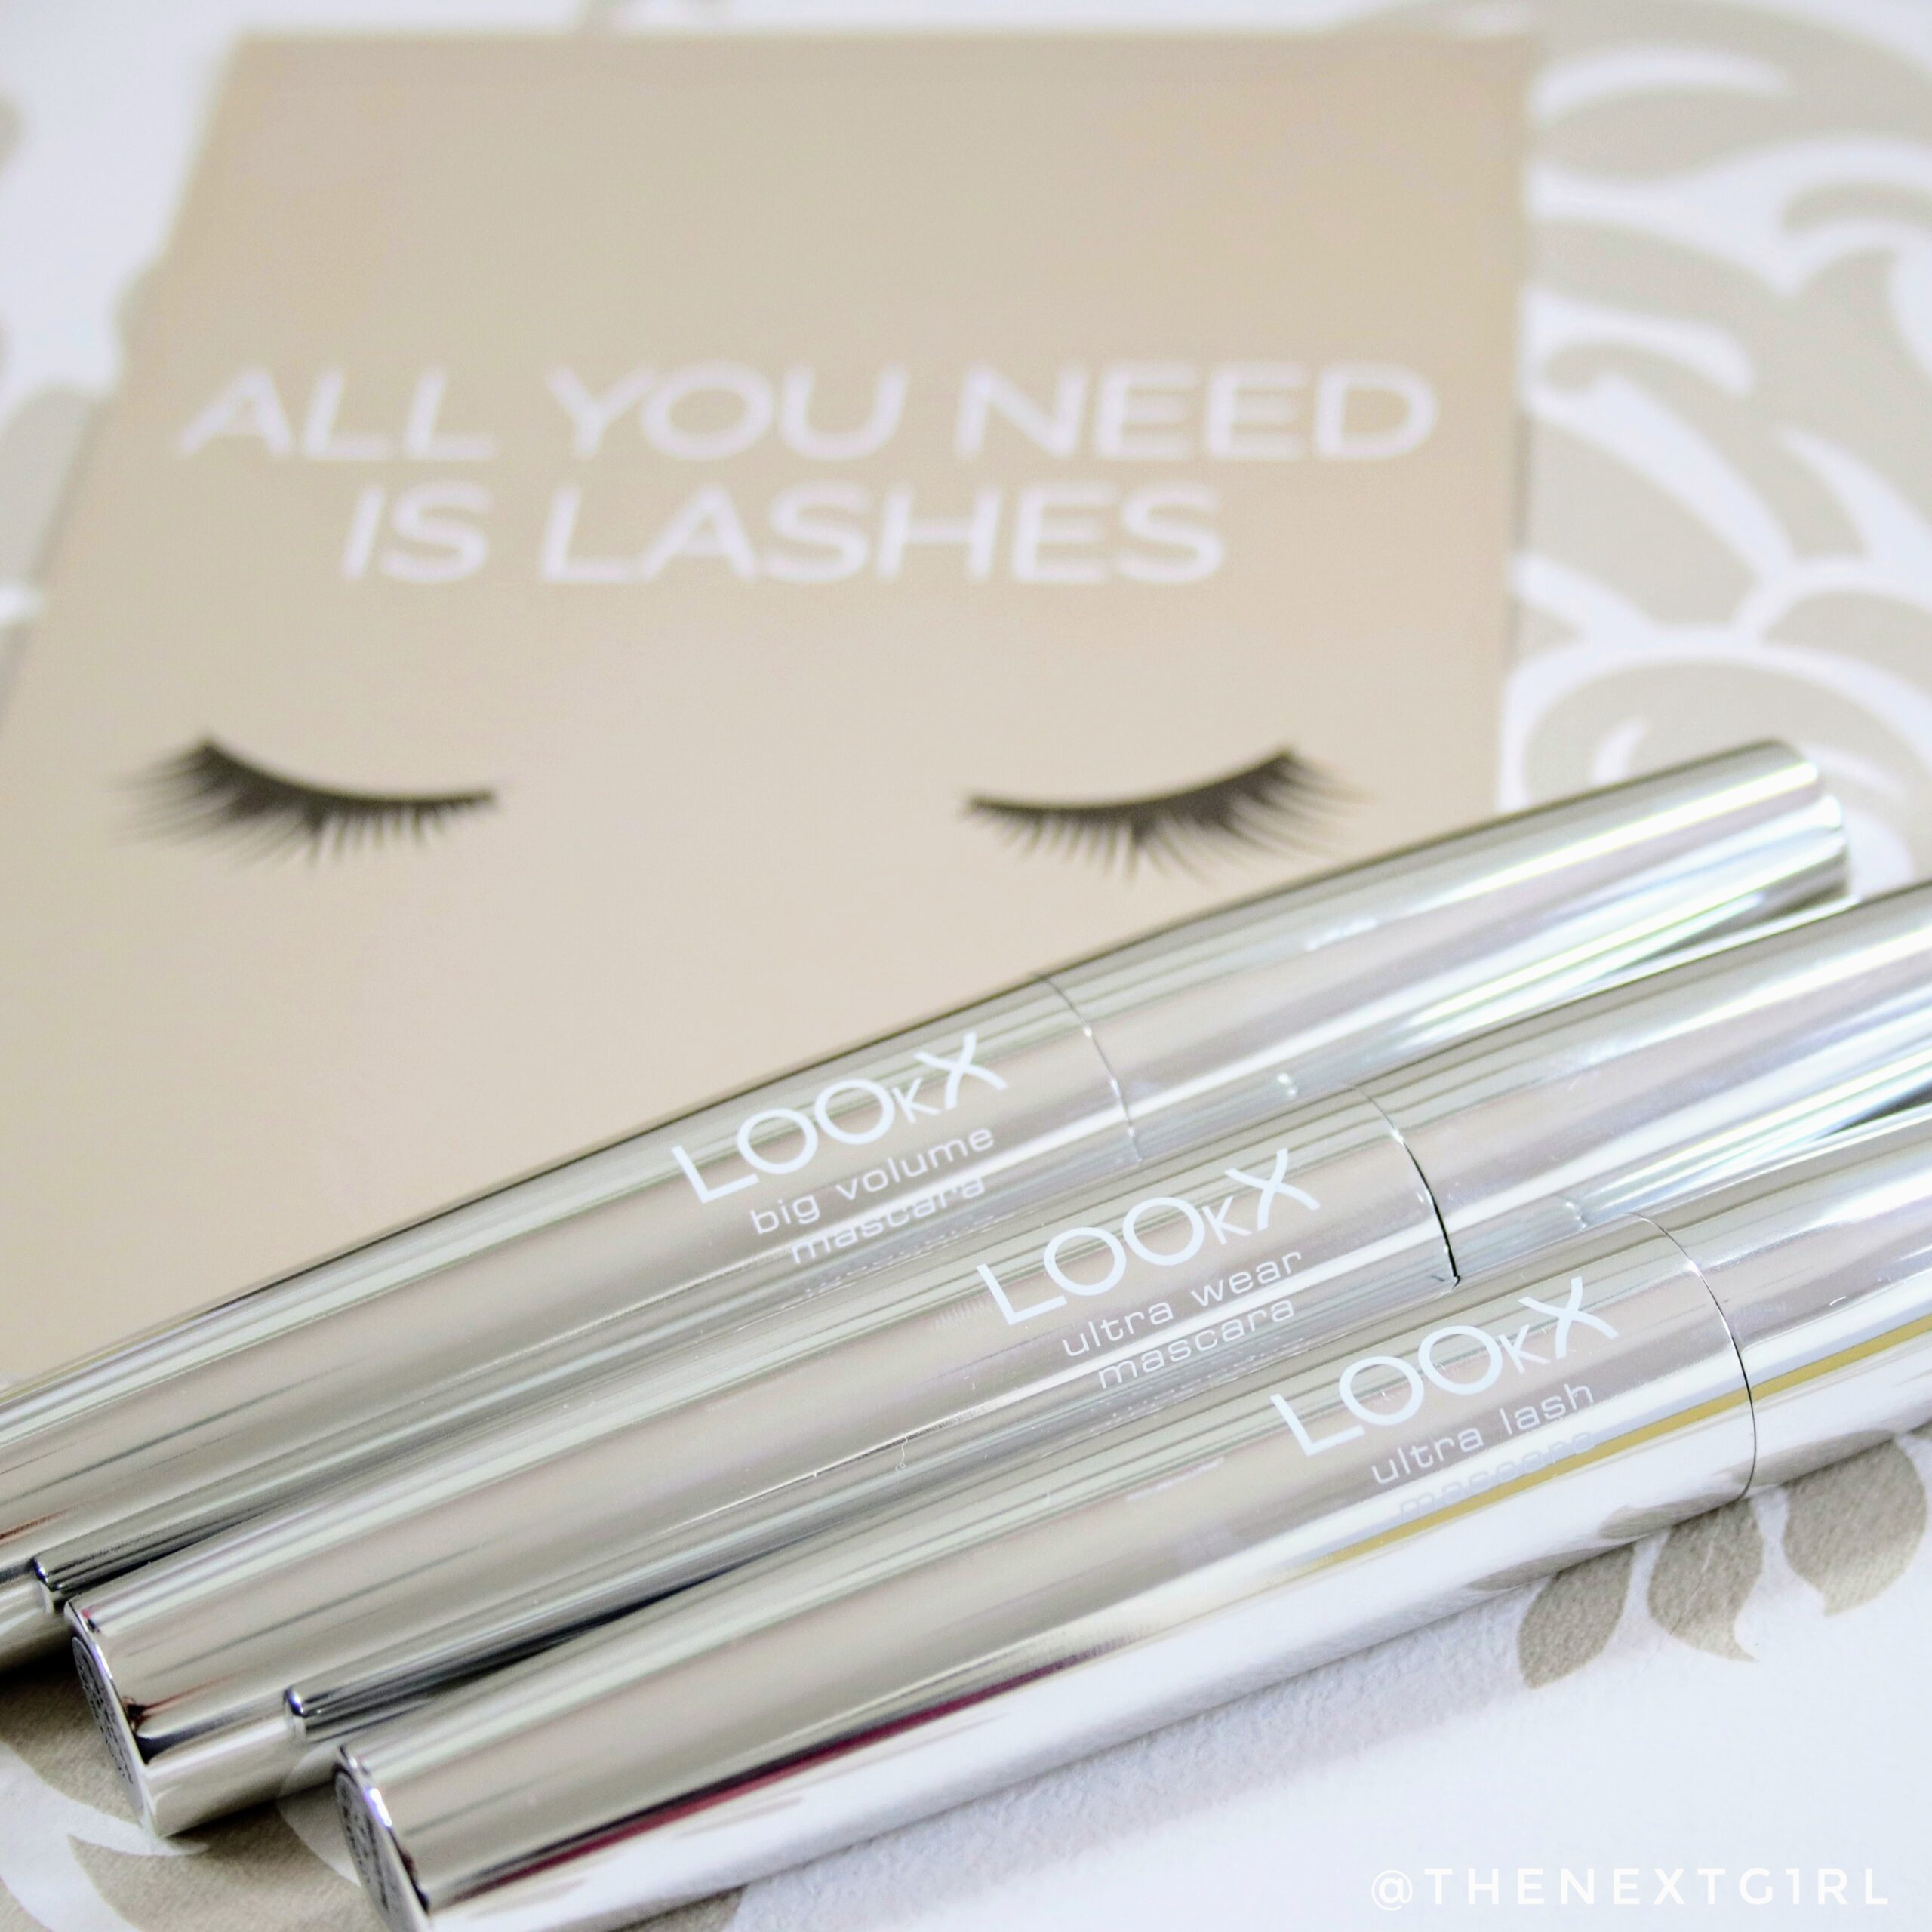 LOOkX Mascara ultra lash wear big volume